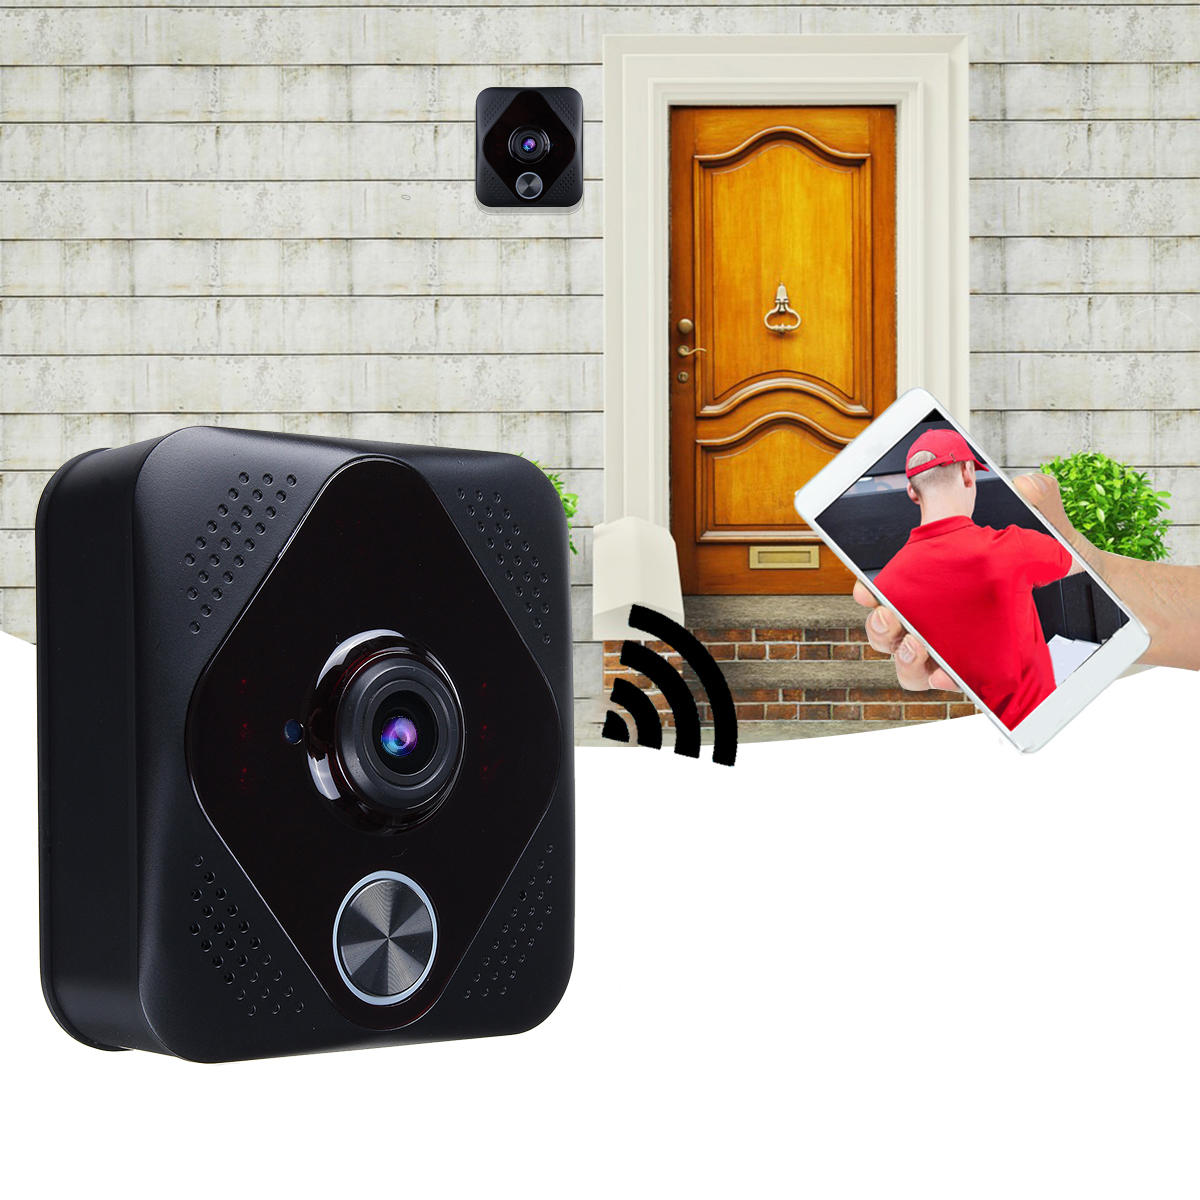 Wholesale WiFi Smart Wireless Phone Video Doorbell Camera Intercom Ring Doorbell Night Vision